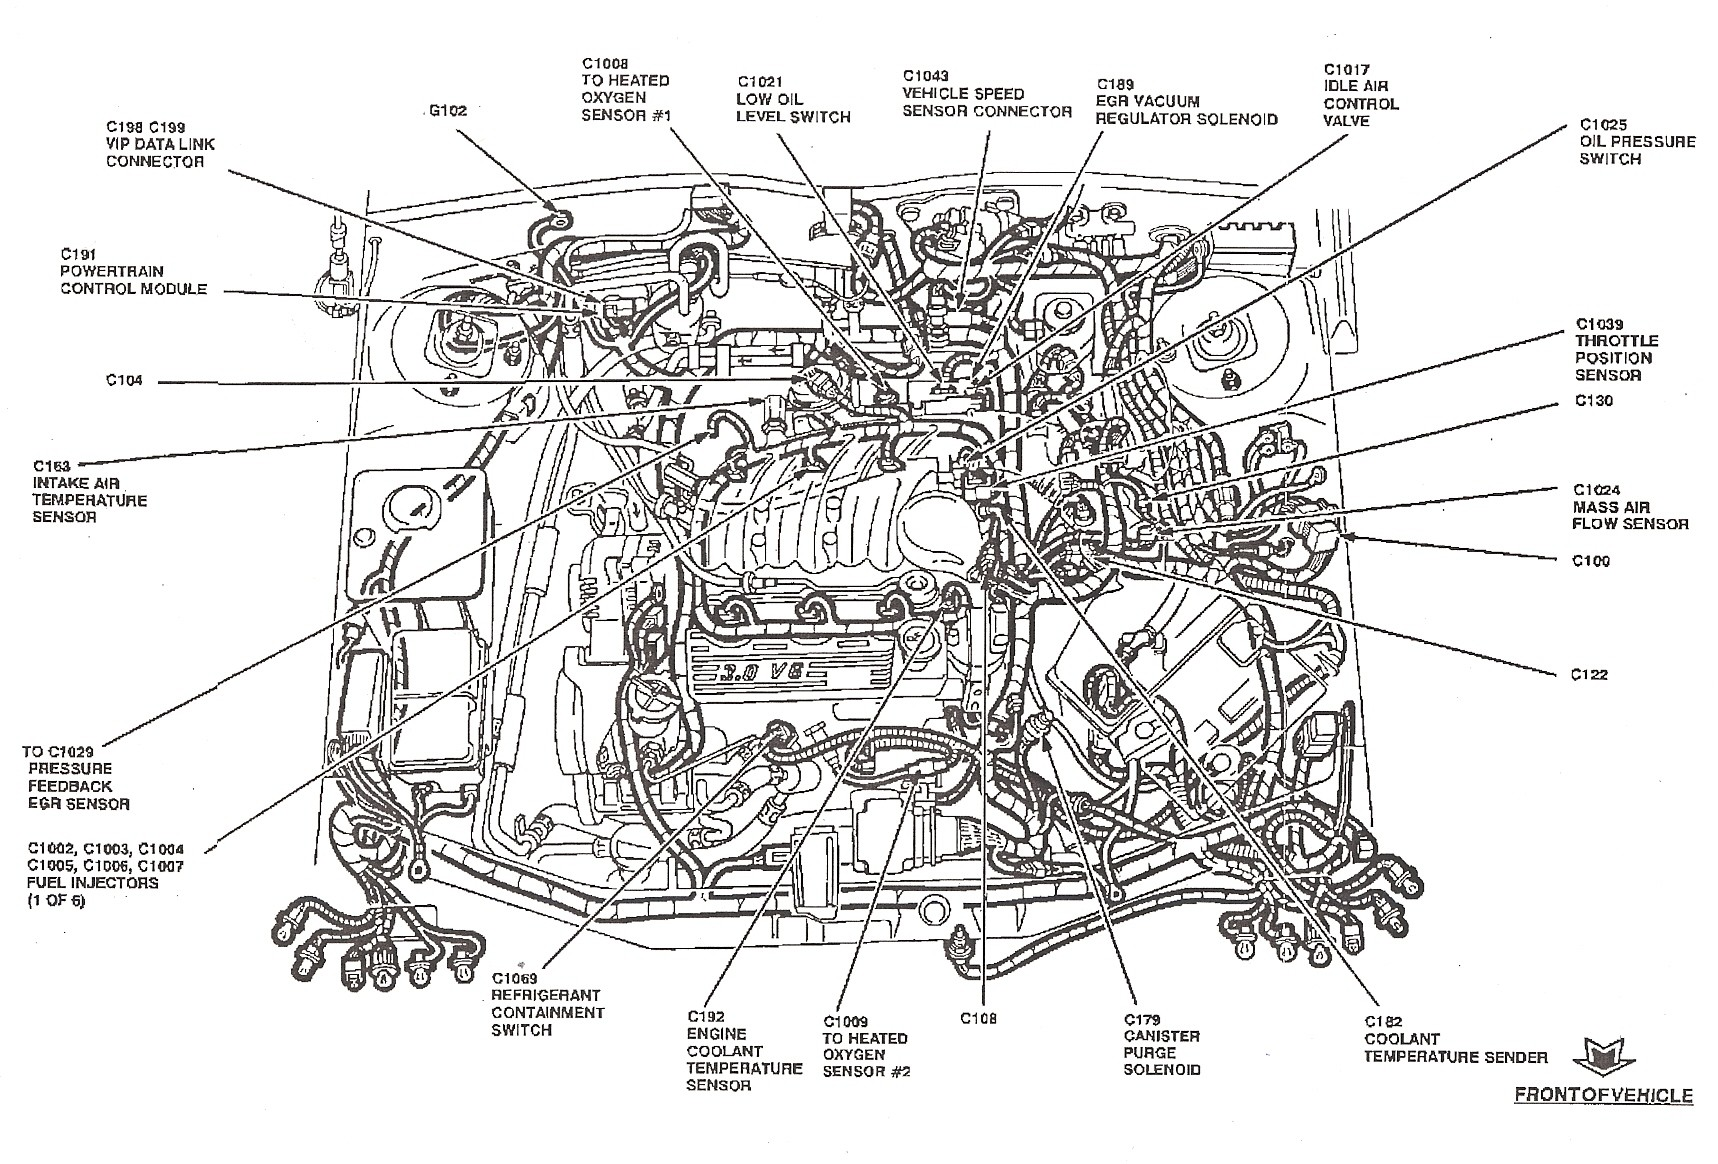 hight resolution of 2001 ford escape engine diagram wiring diagram used 2001 ford escape engine diagram 2001 f250 engine